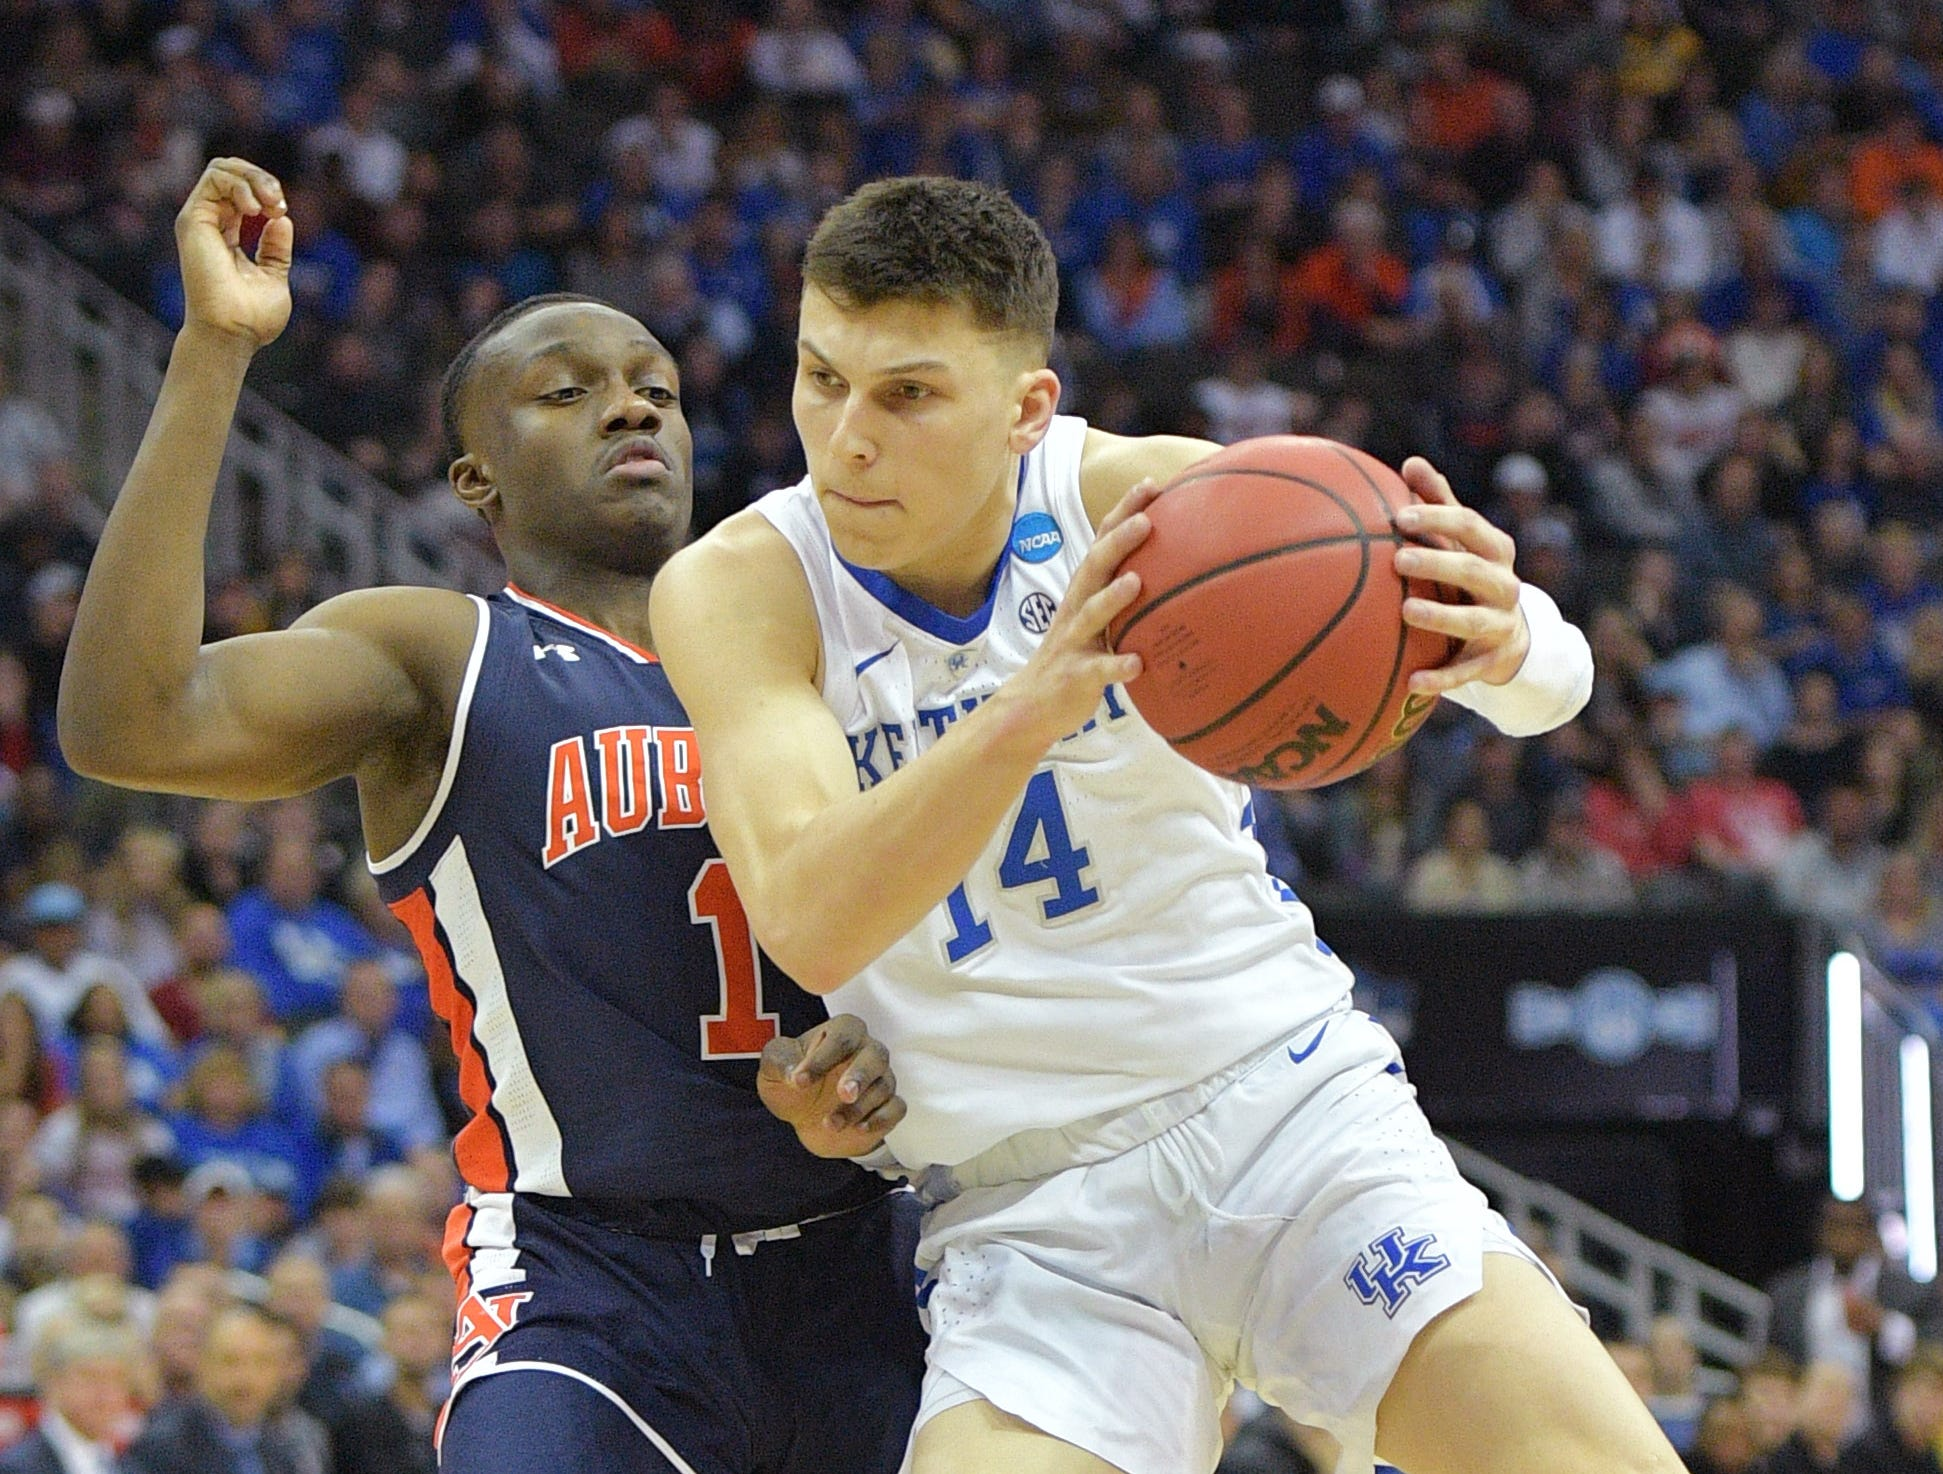 Mar 31, 2019; Kansas City, MO, United States; Kentucky Wildcats guard Tyler Herro (14) drives against Auburn Tigers guard Jared Harper (1) during the first half in the championship game of the midwest regional of the 2019 NCAA Tournament at Sprint Center. Mandatory Credit: Denny Medley-USA TODAY Sports